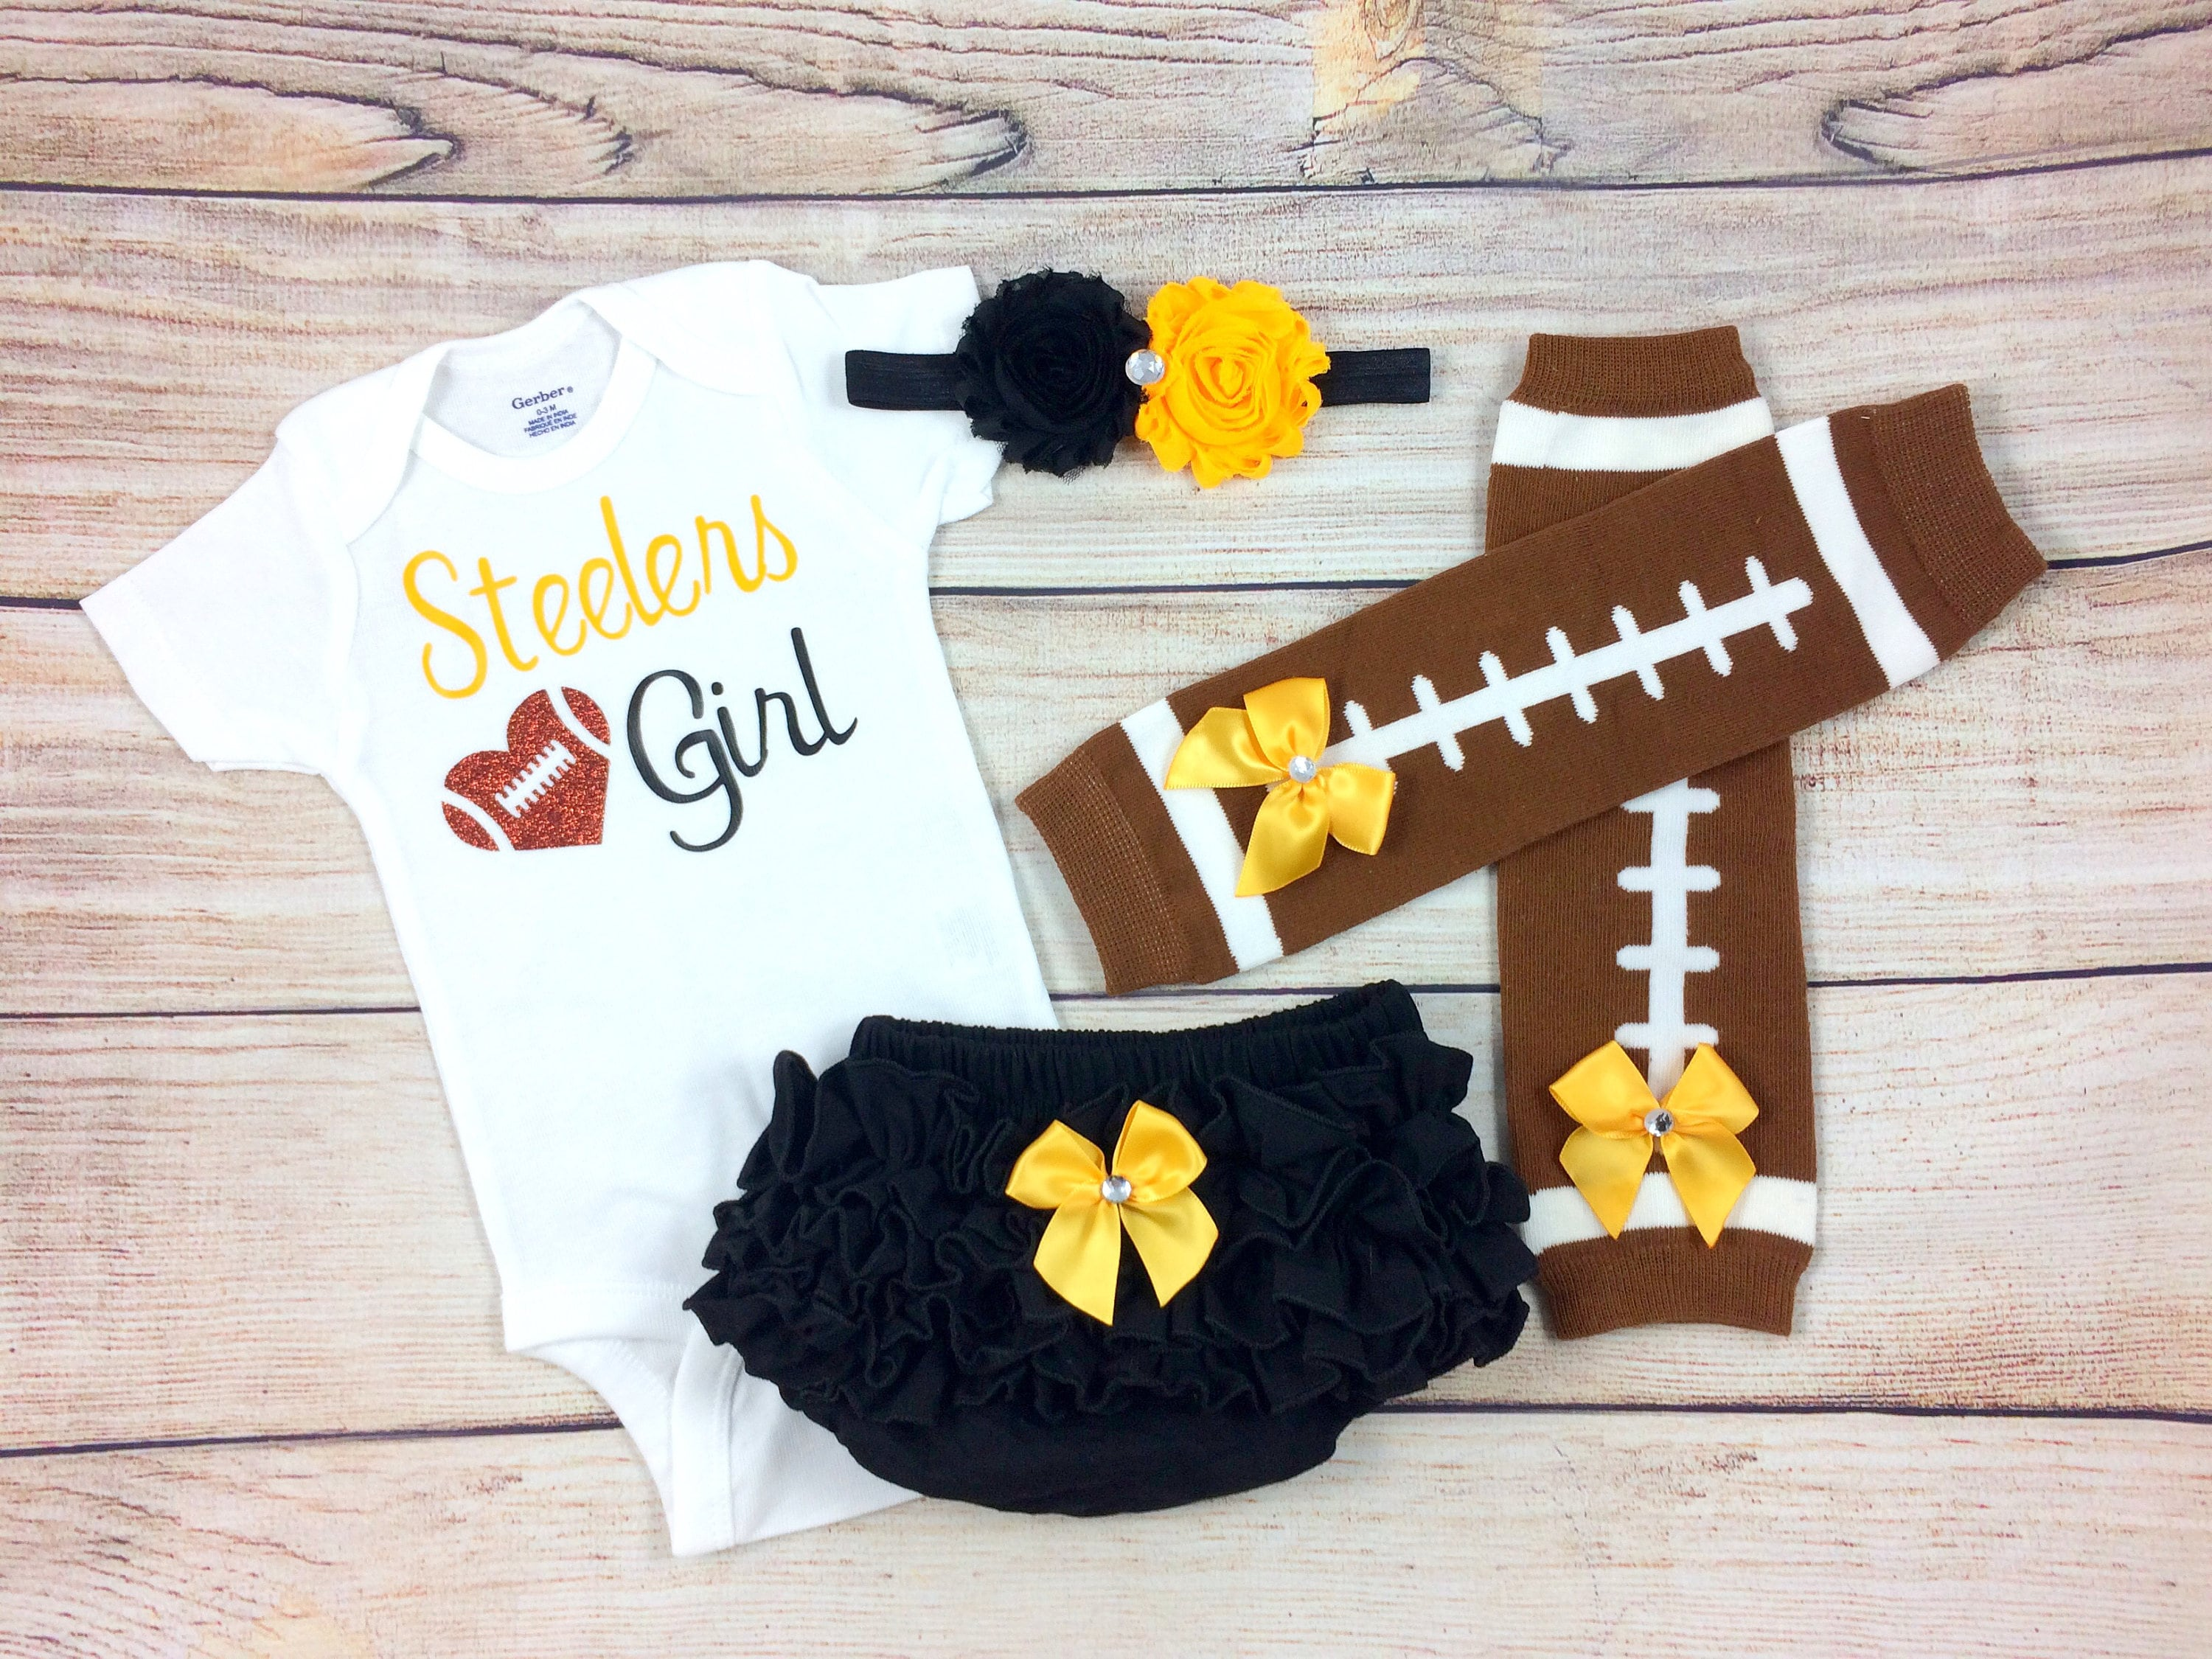 Steelers Girl Baby Football Outfit Cheerleader Game Day